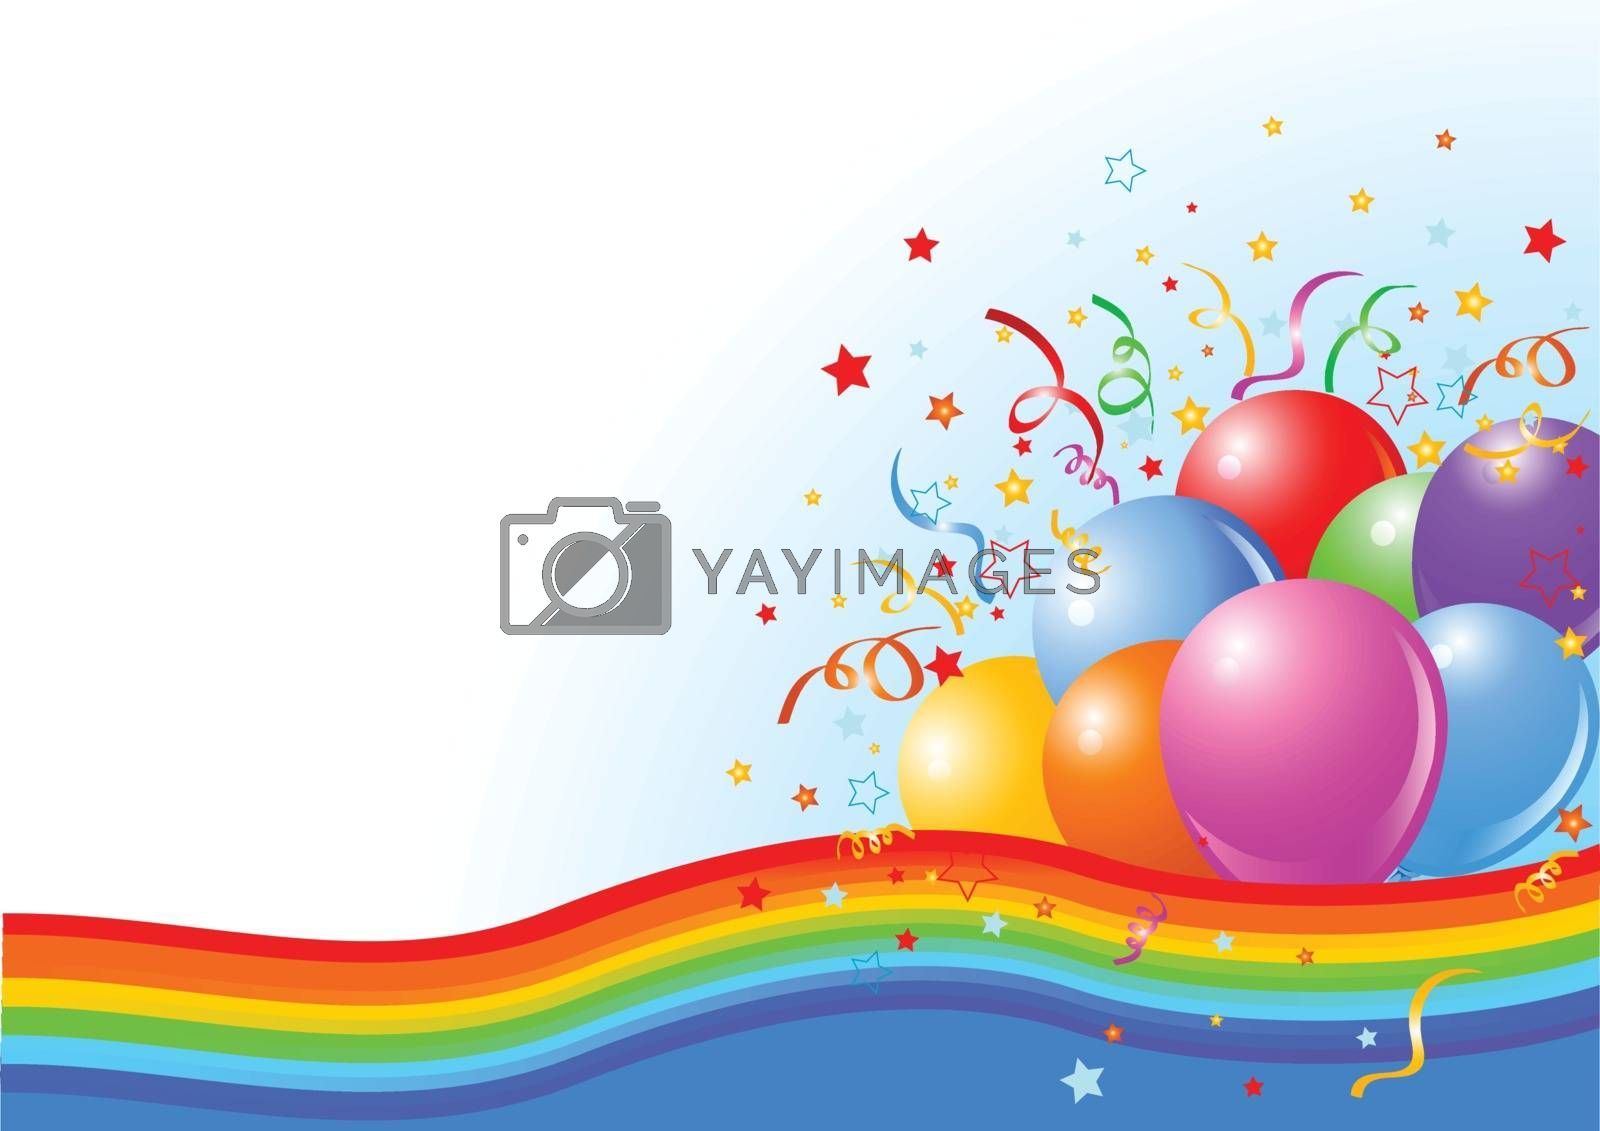 Royalty free image of Party balloons background by Dazdraperma